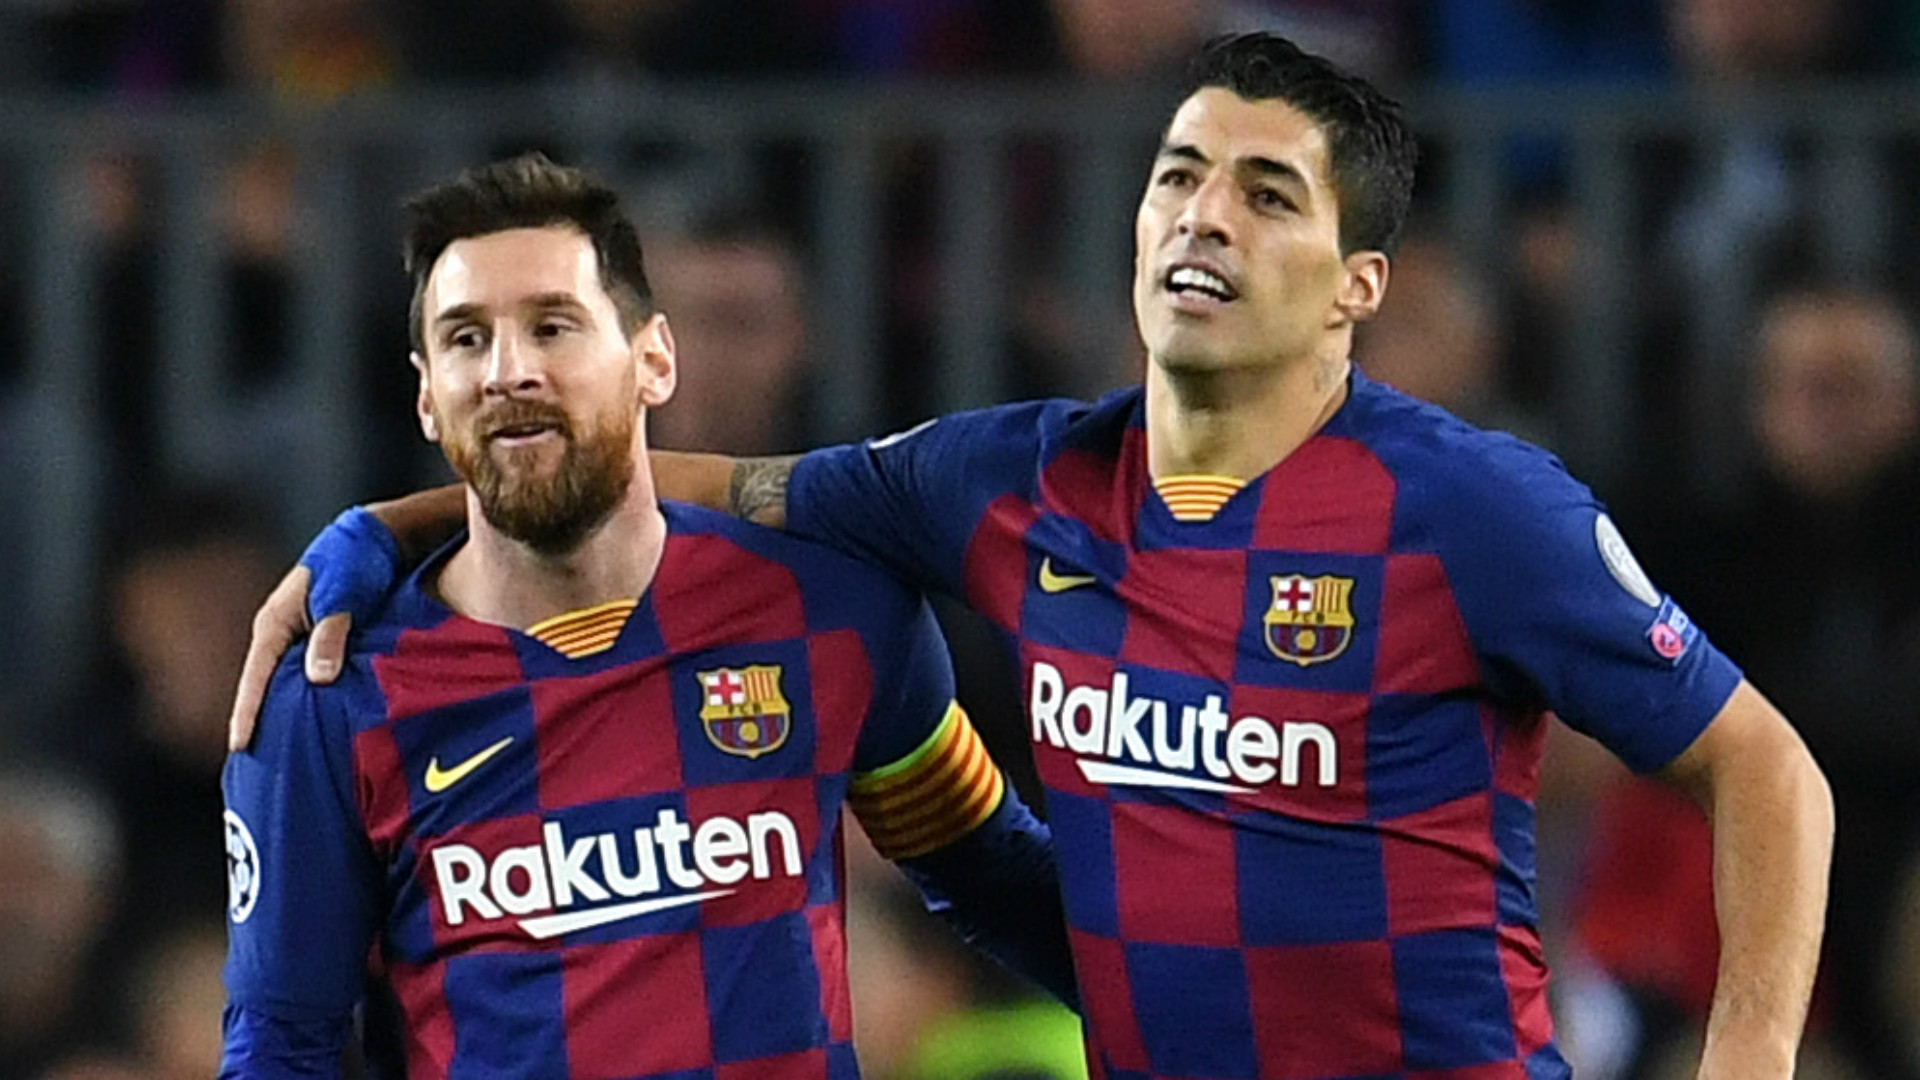 Lionel Messi finished as top goalscorer in Spanish La Liga for a record seventh time after netting twice as dethroned champions FC Barcelona went on a scoring spree on Sunday. They ended their disappointing 2019/2020 campaign on a high with a resounding 5-0 win at Alaves. Barca finished the season second in the standings on […]